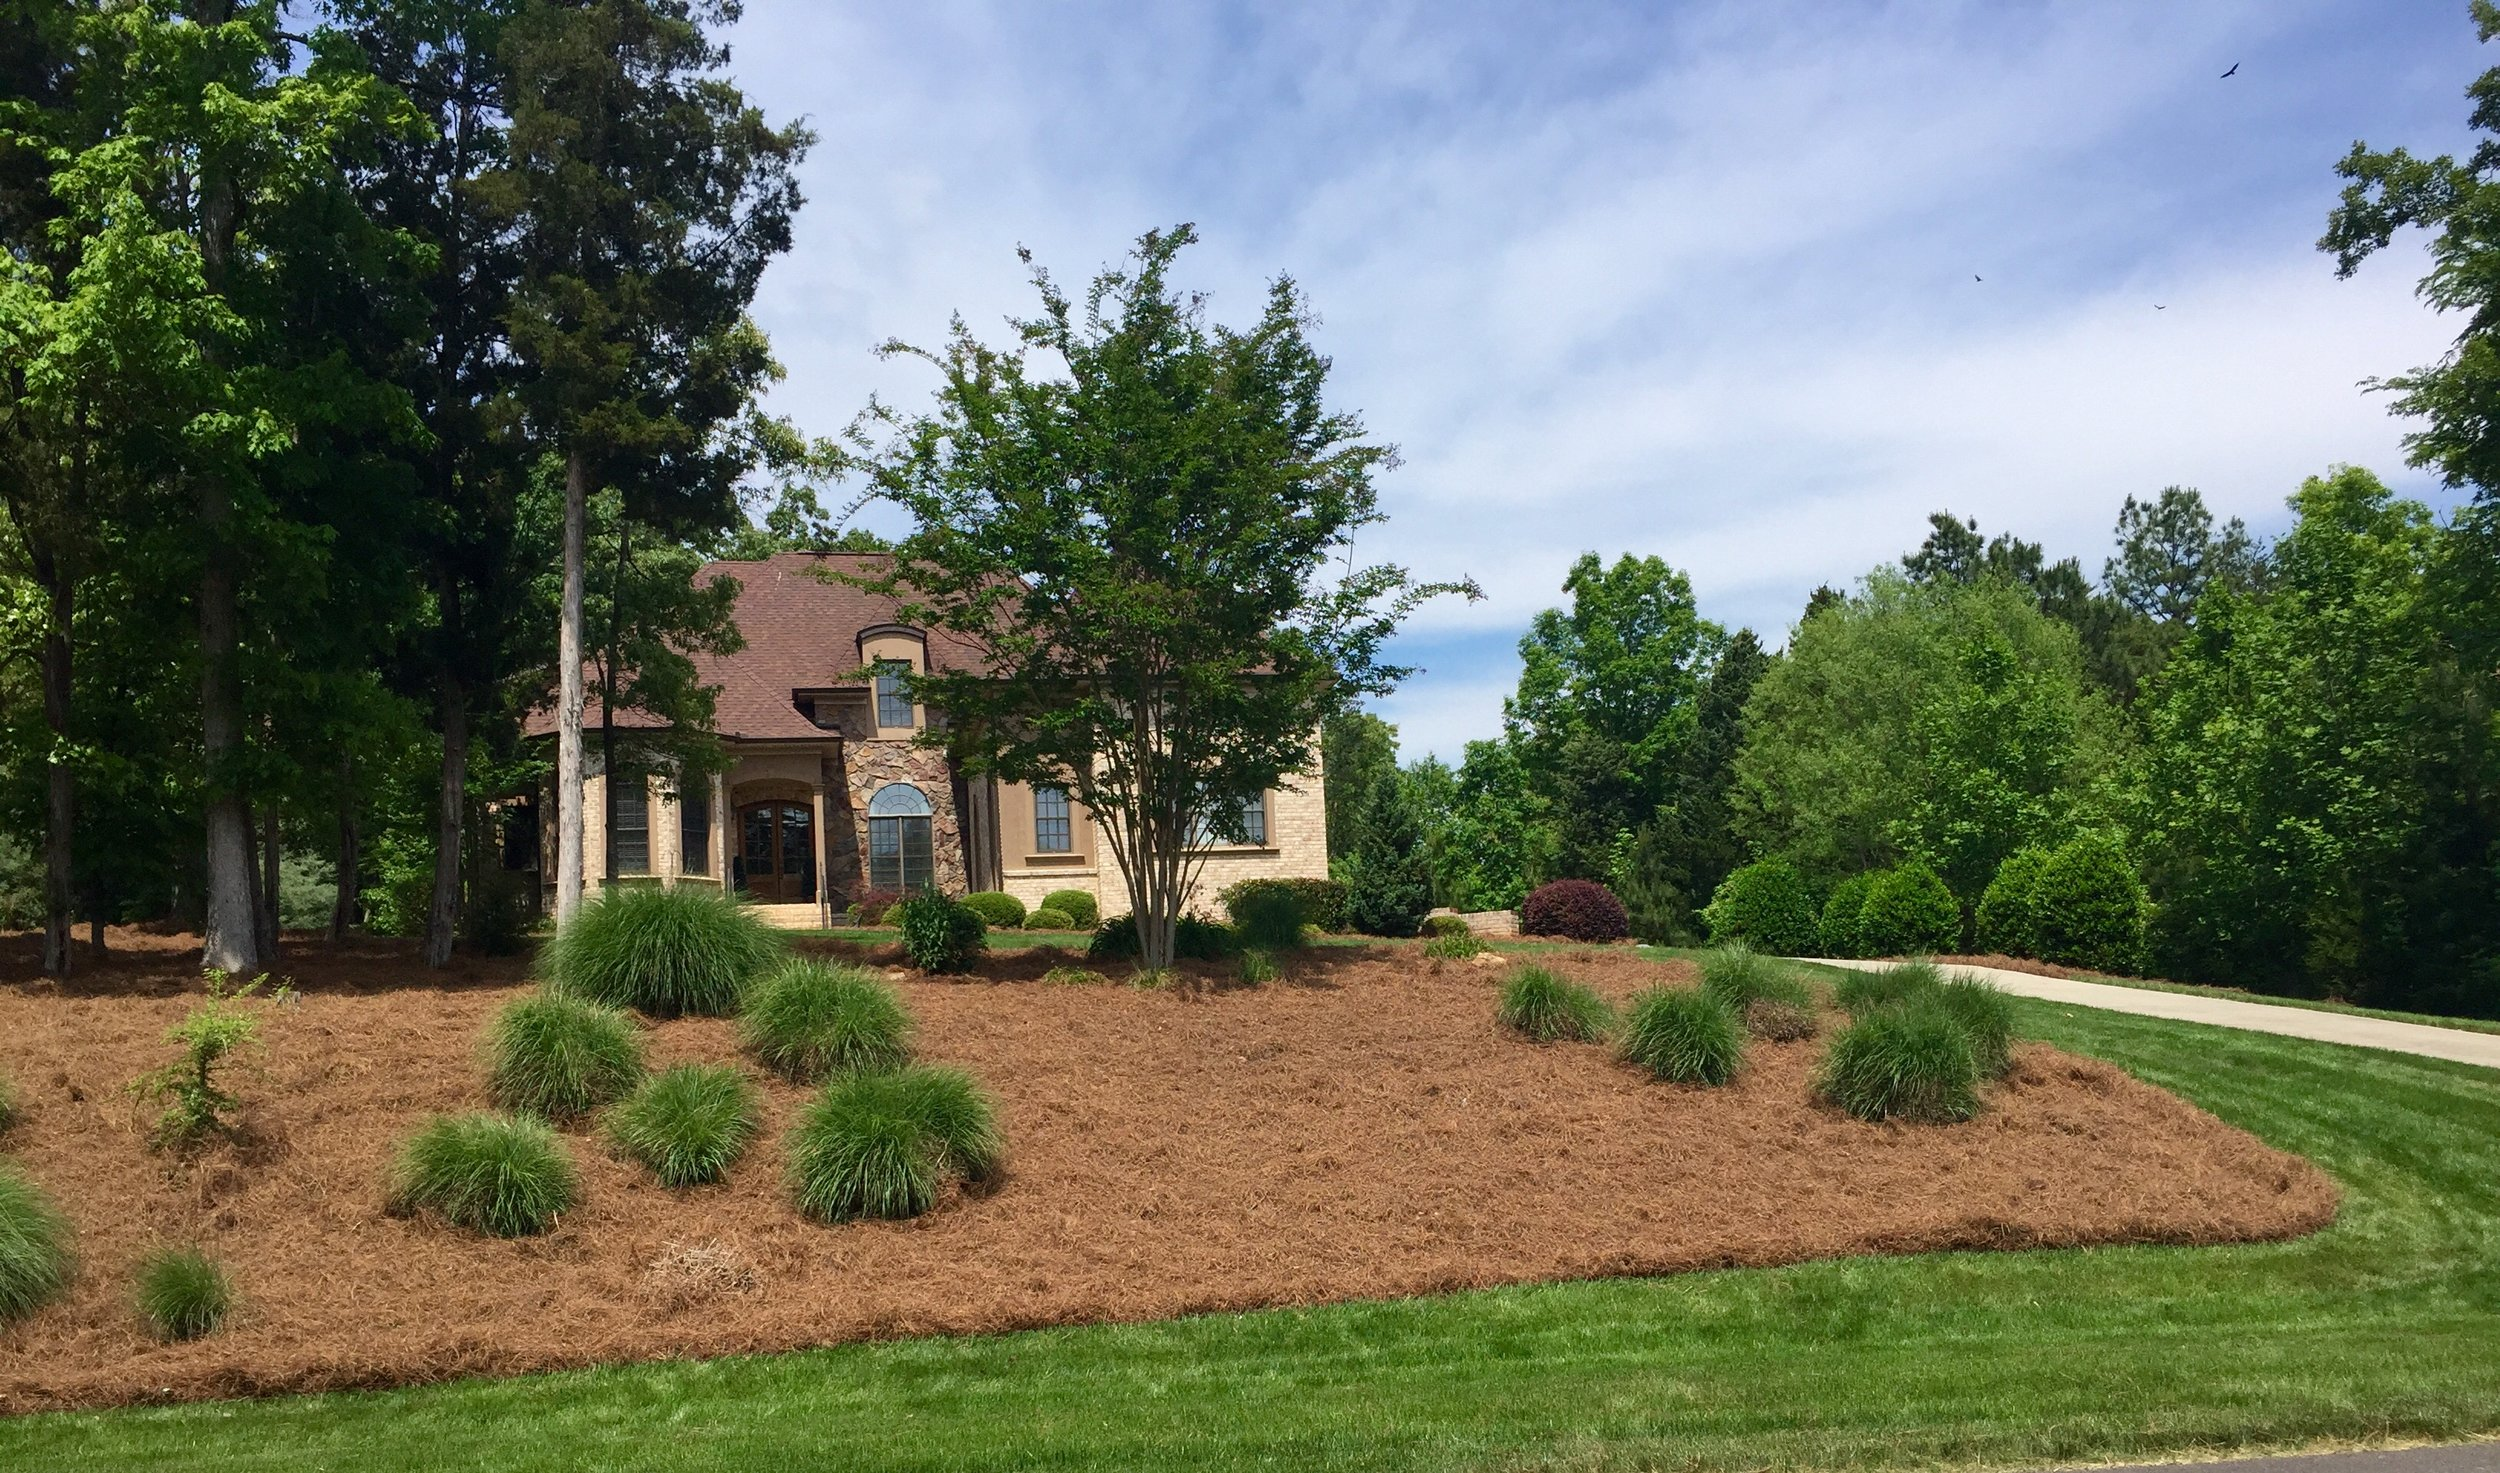 Large pine straw mulch bed in yard.